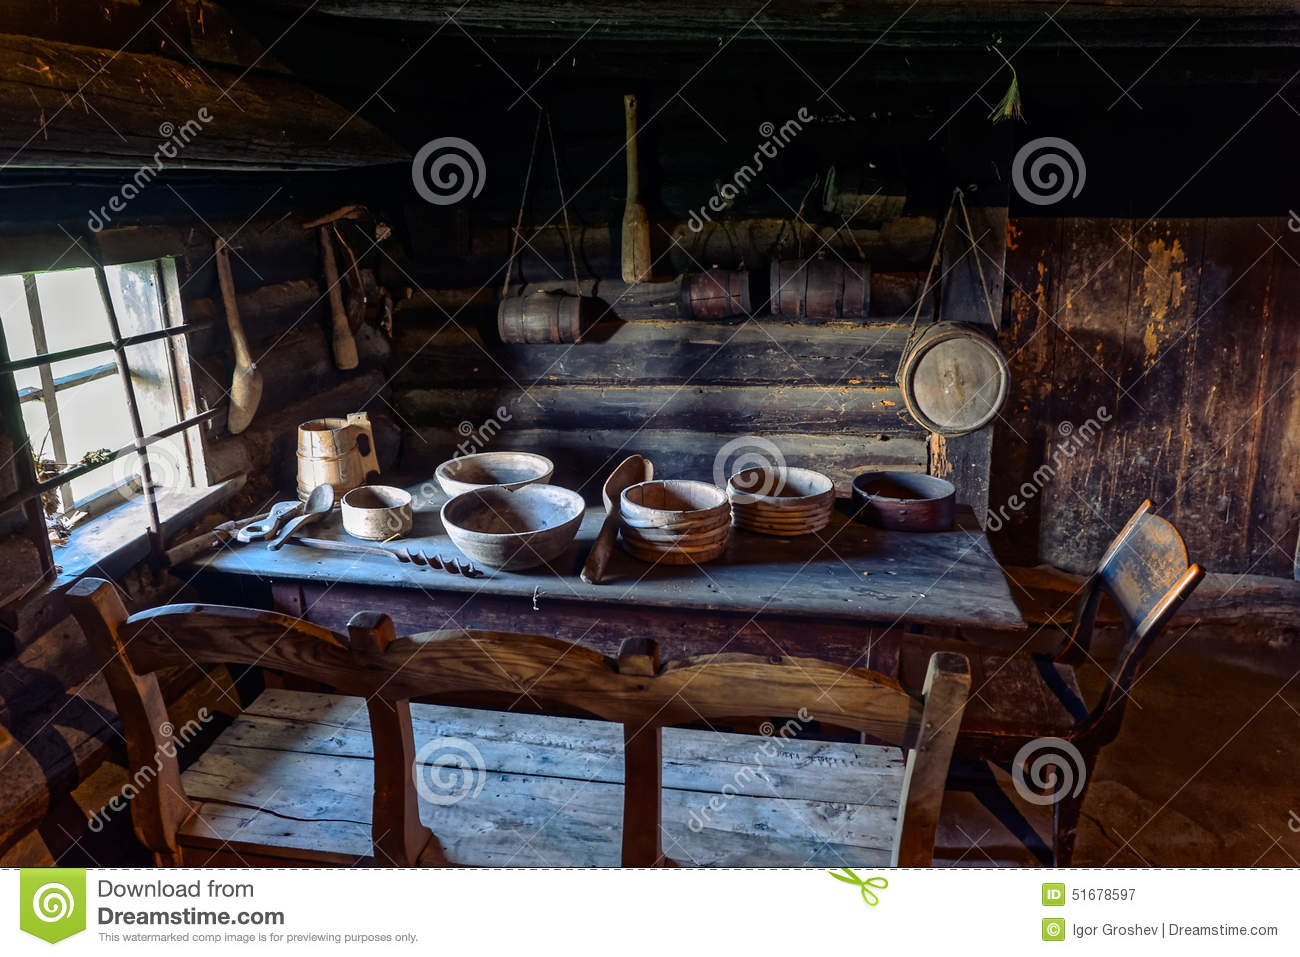 Vieille table de salle manger de ferme photo stock - Vieille table en bois ...